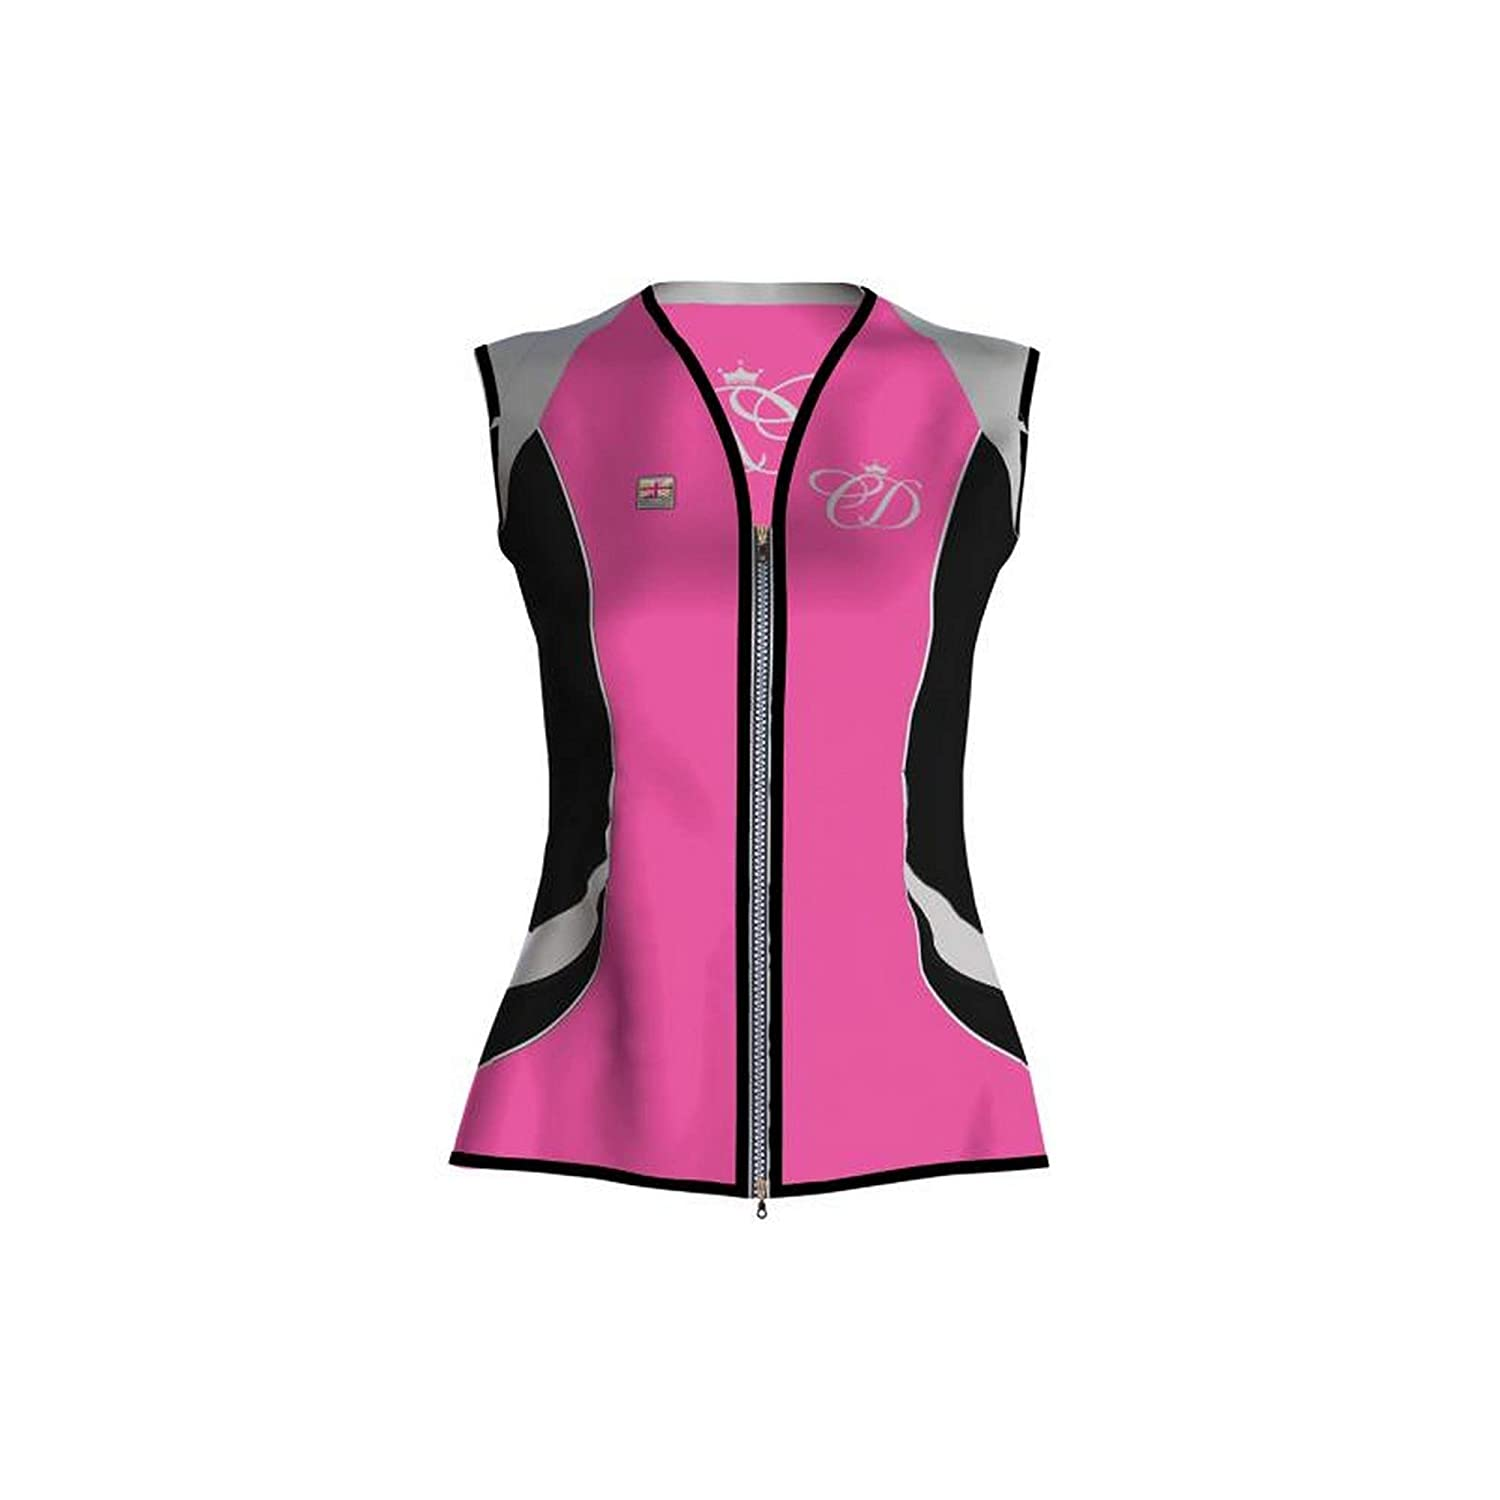 Equisafety Charlotte Dujardin Arret Waistcoat B074WQQ5RR Small|ピンク ピンク Small